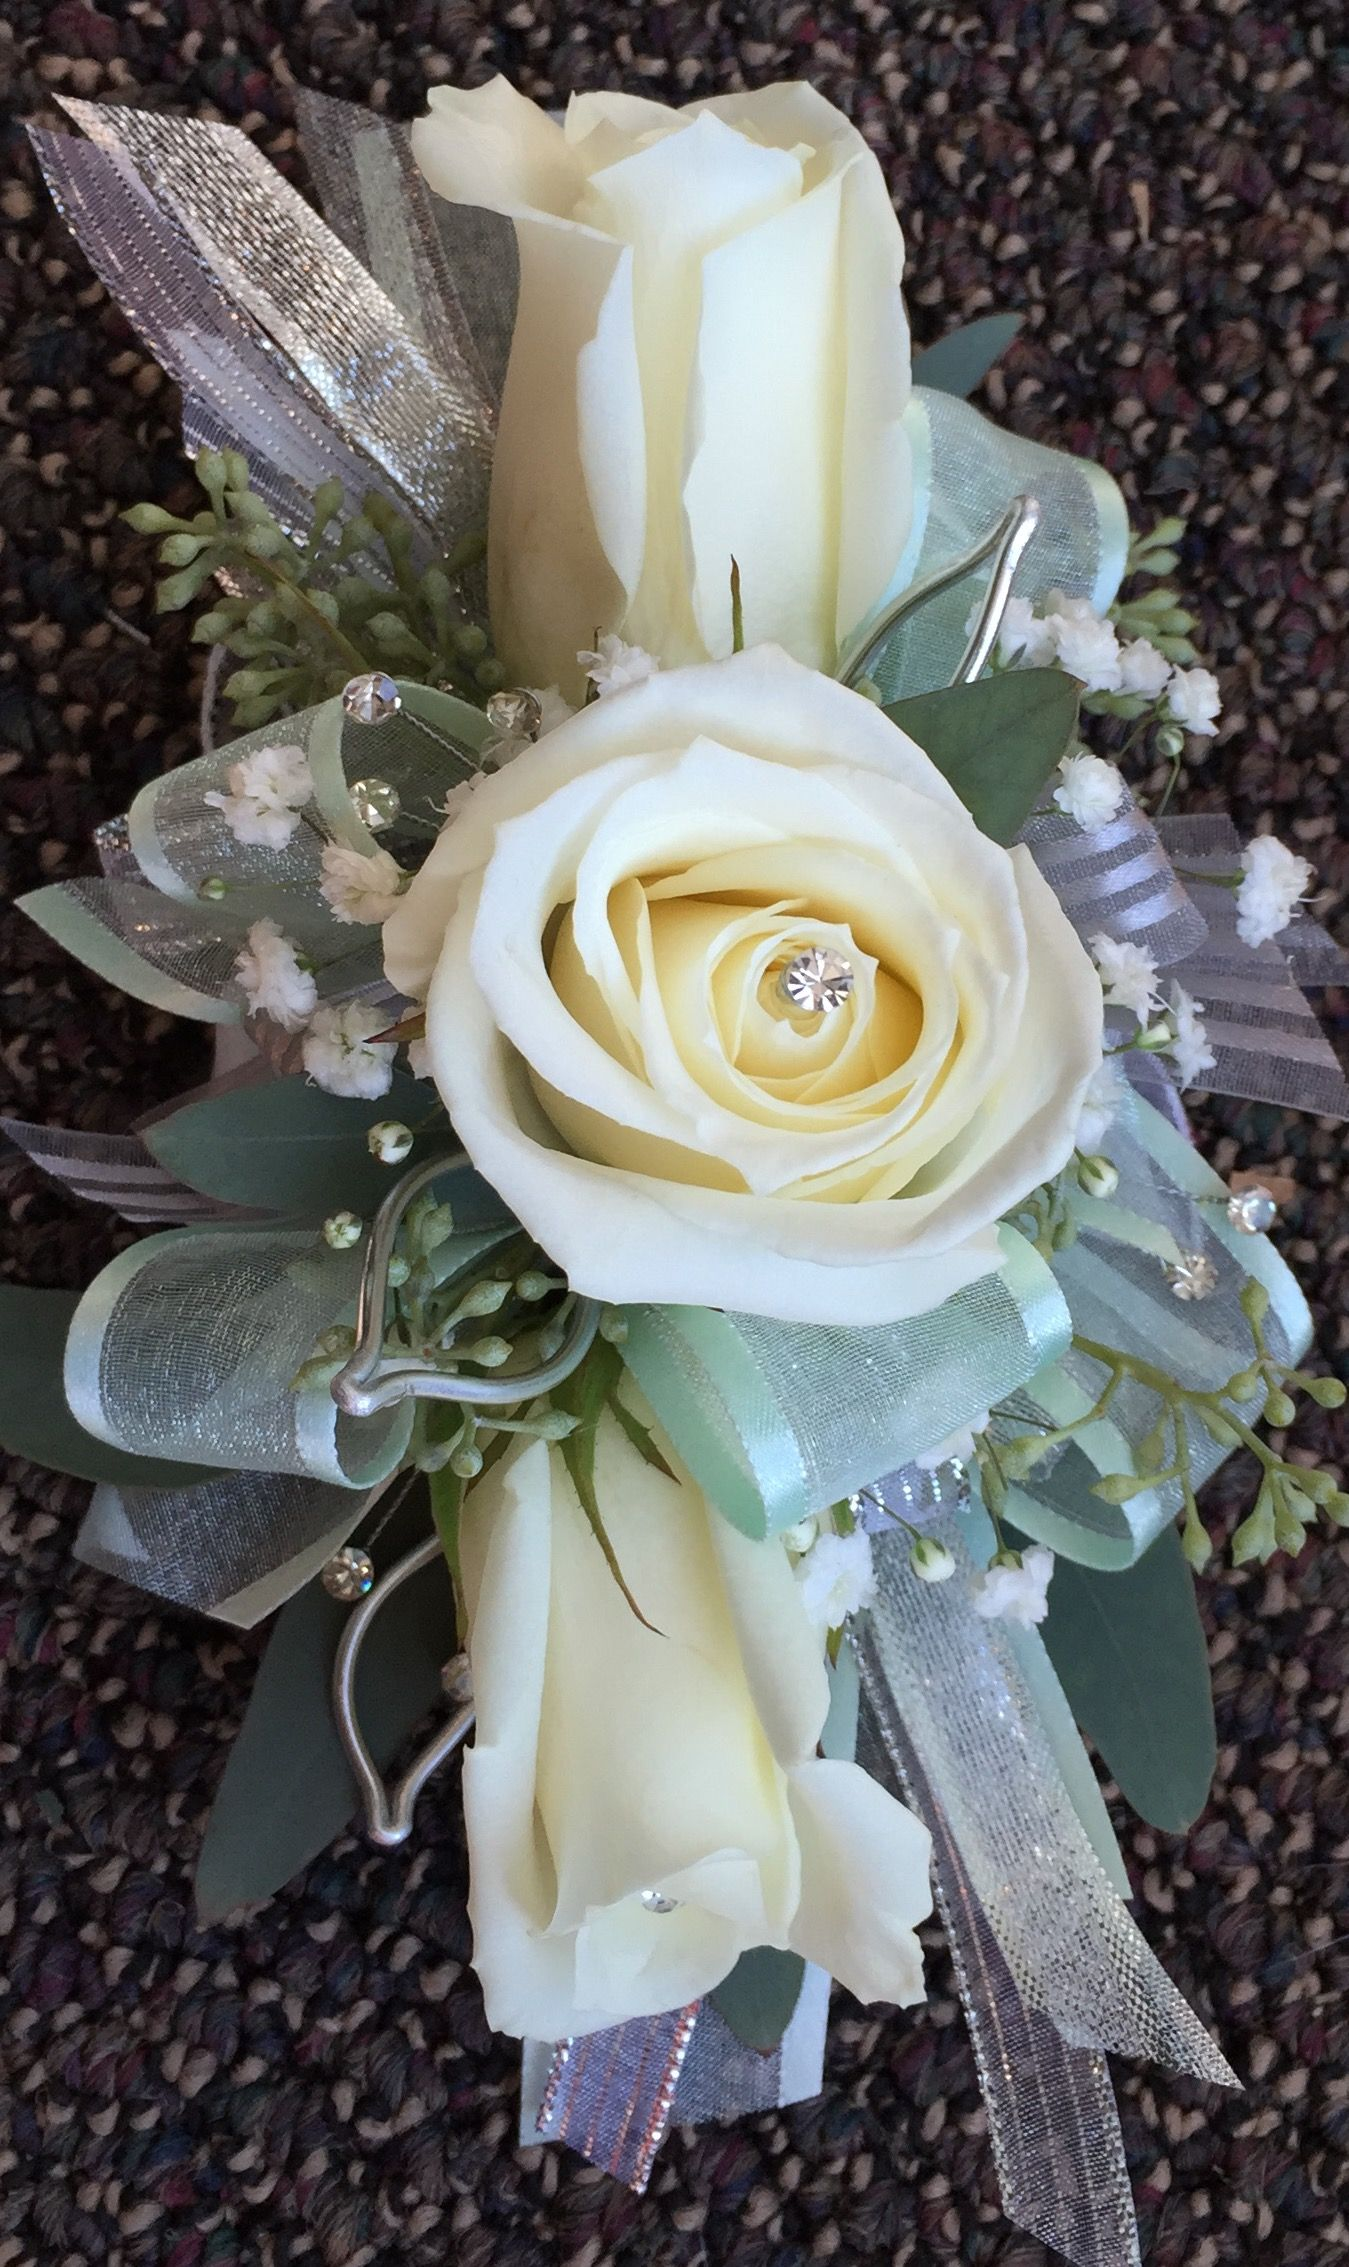 Rose Wrist Corsage With Light Aqua And Silver Accents Diy CorsagesWedding